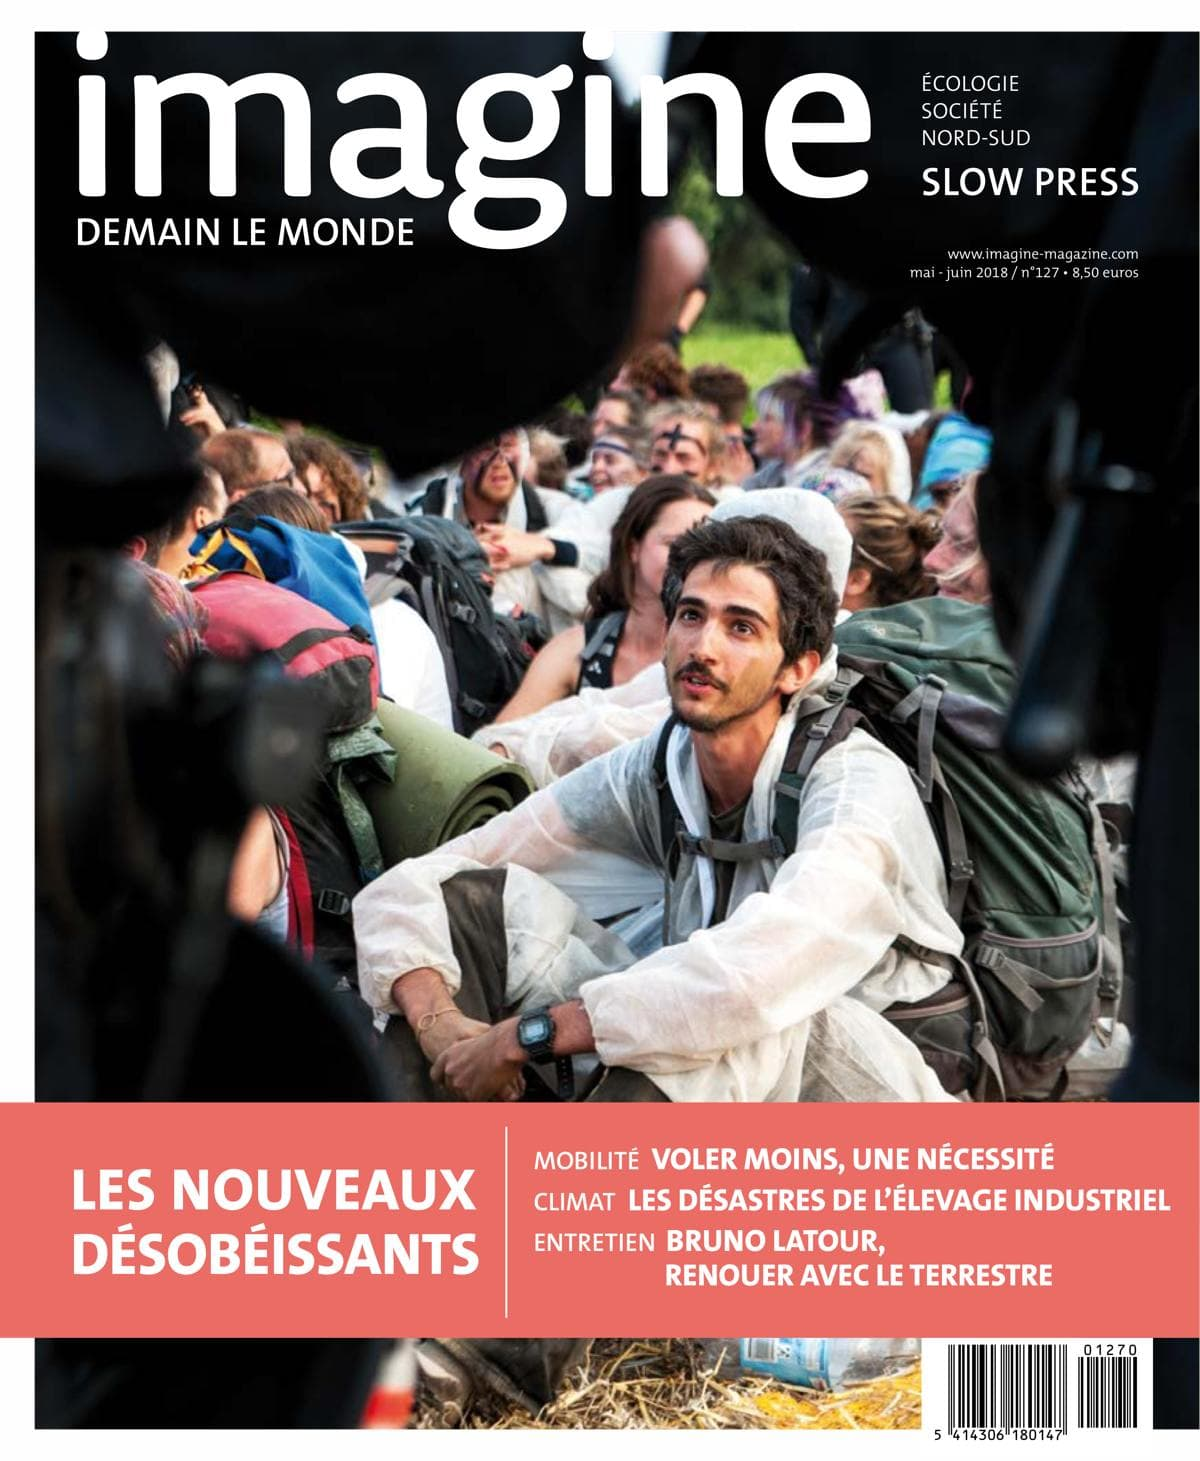 Couverture Imagine demain le monde, n°127